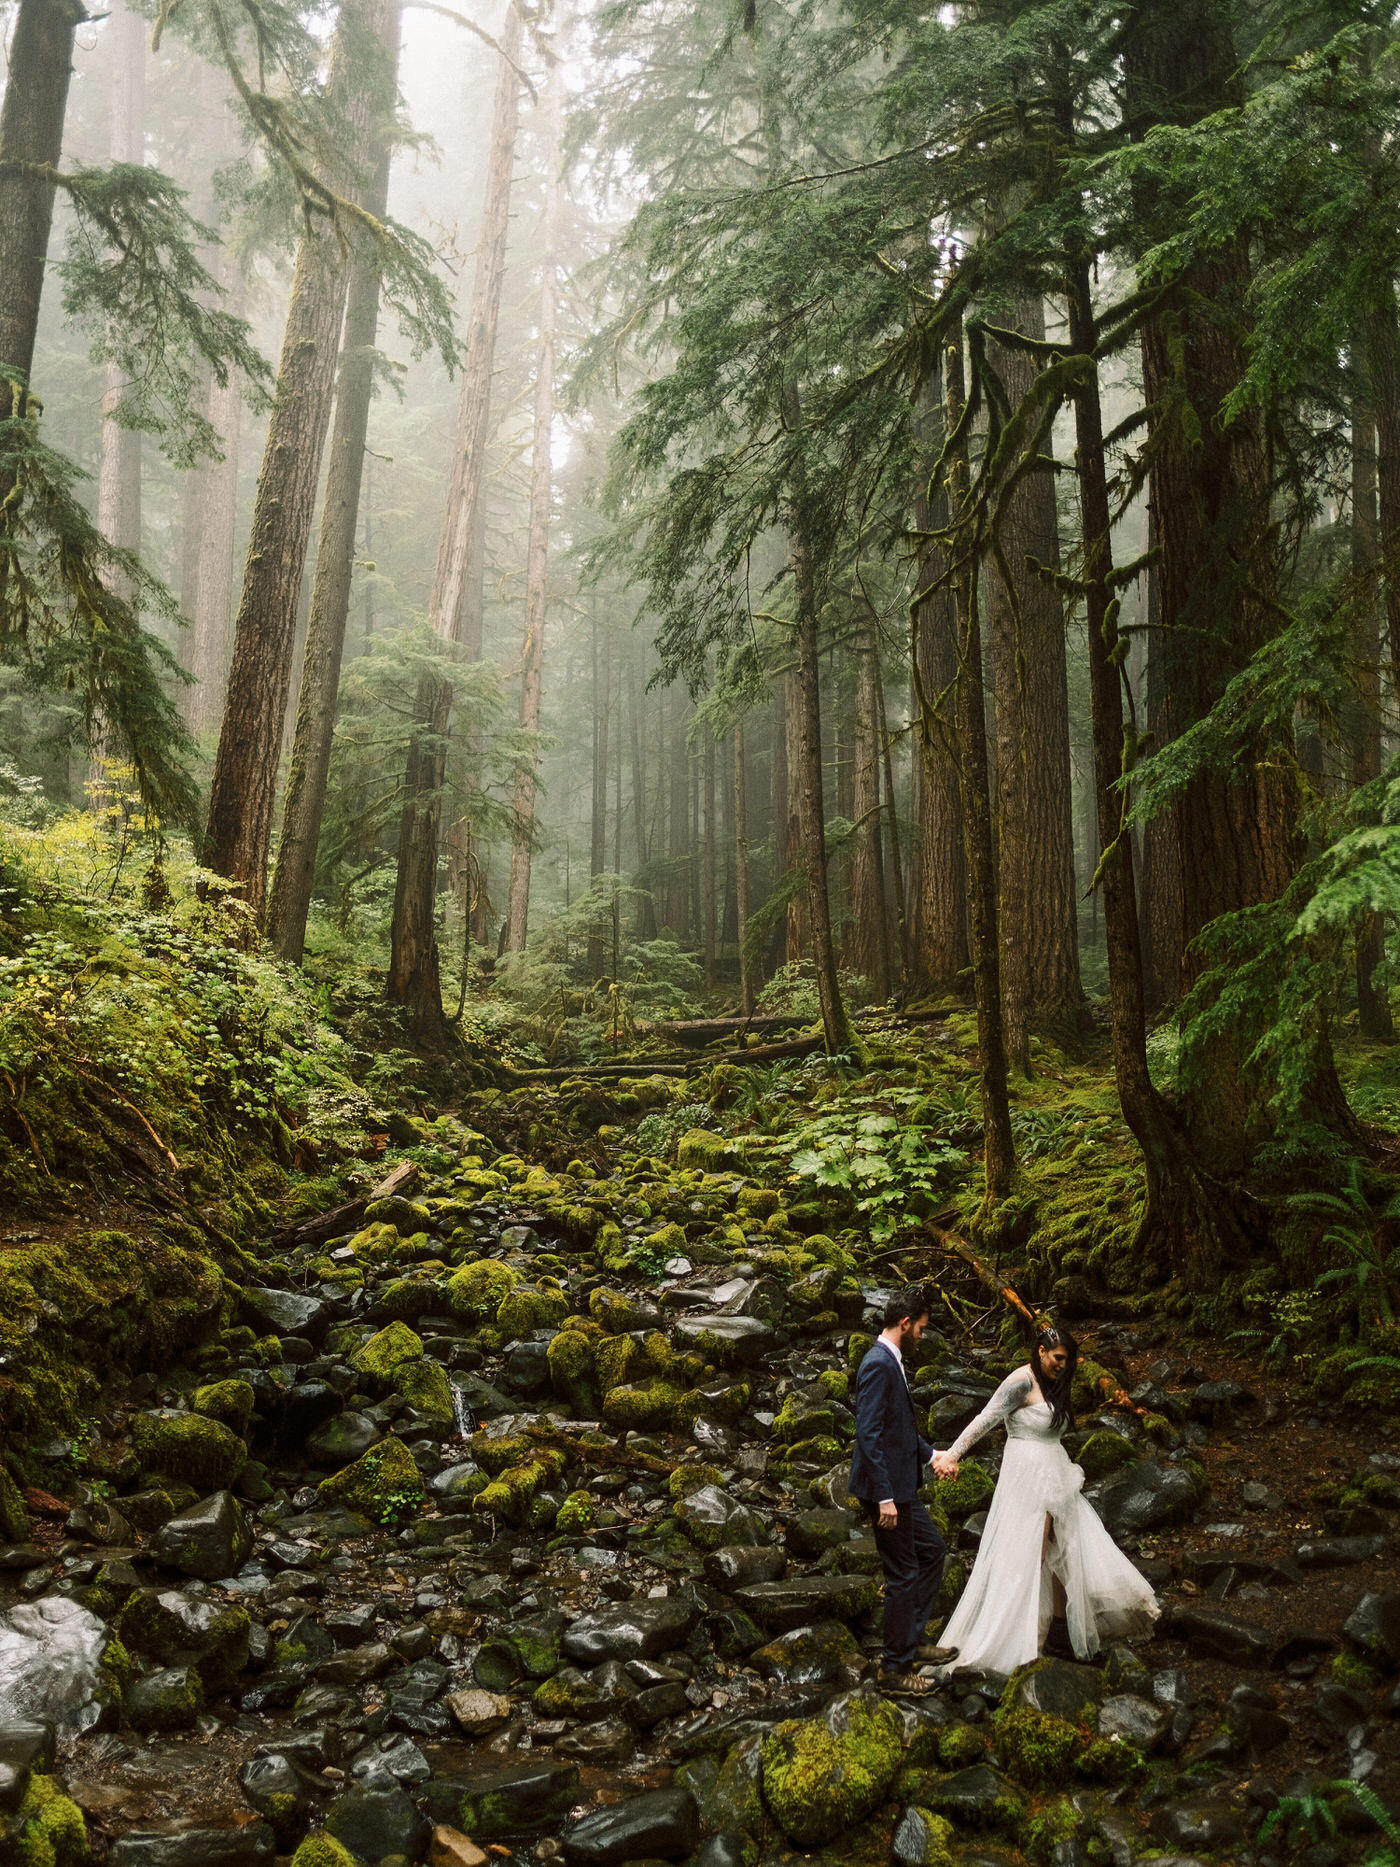 152-pacific-northwest-wedding-photography-by-ryan-flynn.jpg